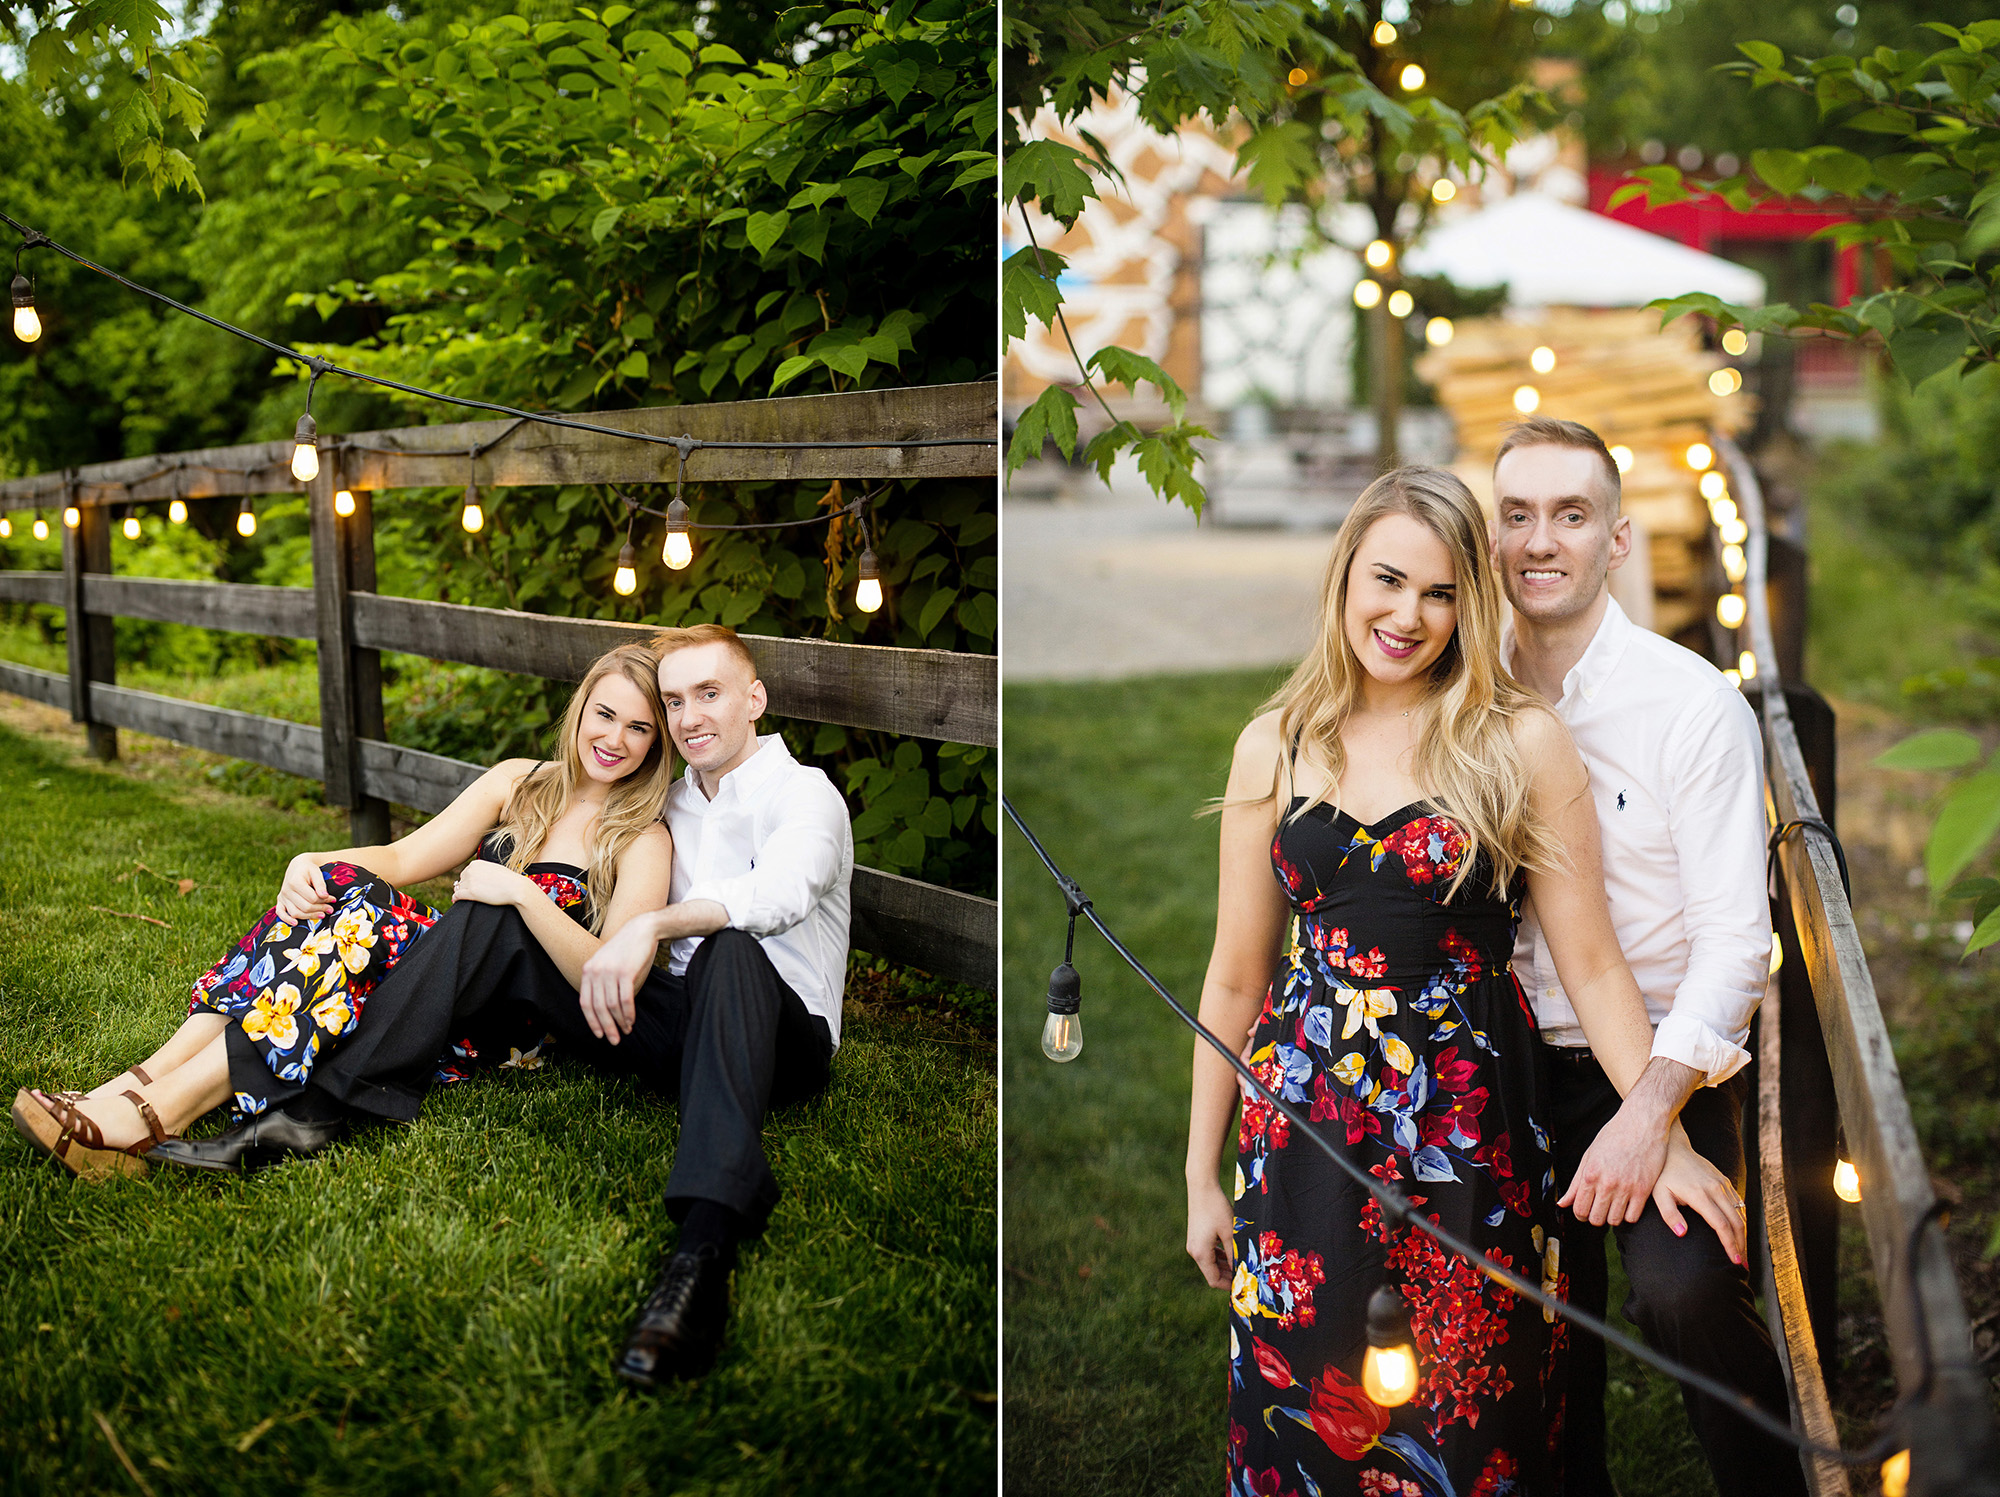 Seriously_Sabrina_Photography_Lexington_Kentucky_Transylvania_Burl_Distillery_District_Downtown_Engagement_JJ_31.jpg